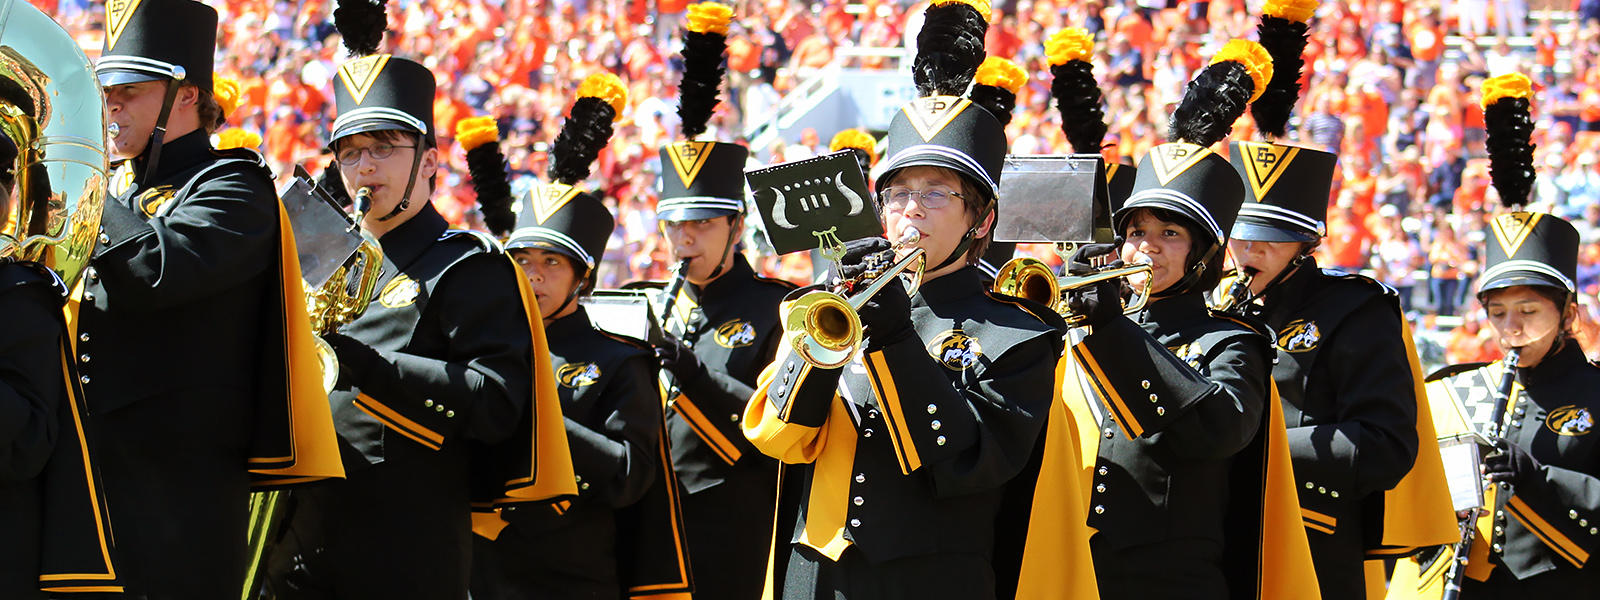 The EPHS Marching Tigers perform with the U of I Marching Illini during halftime of the Illinois football season opener.